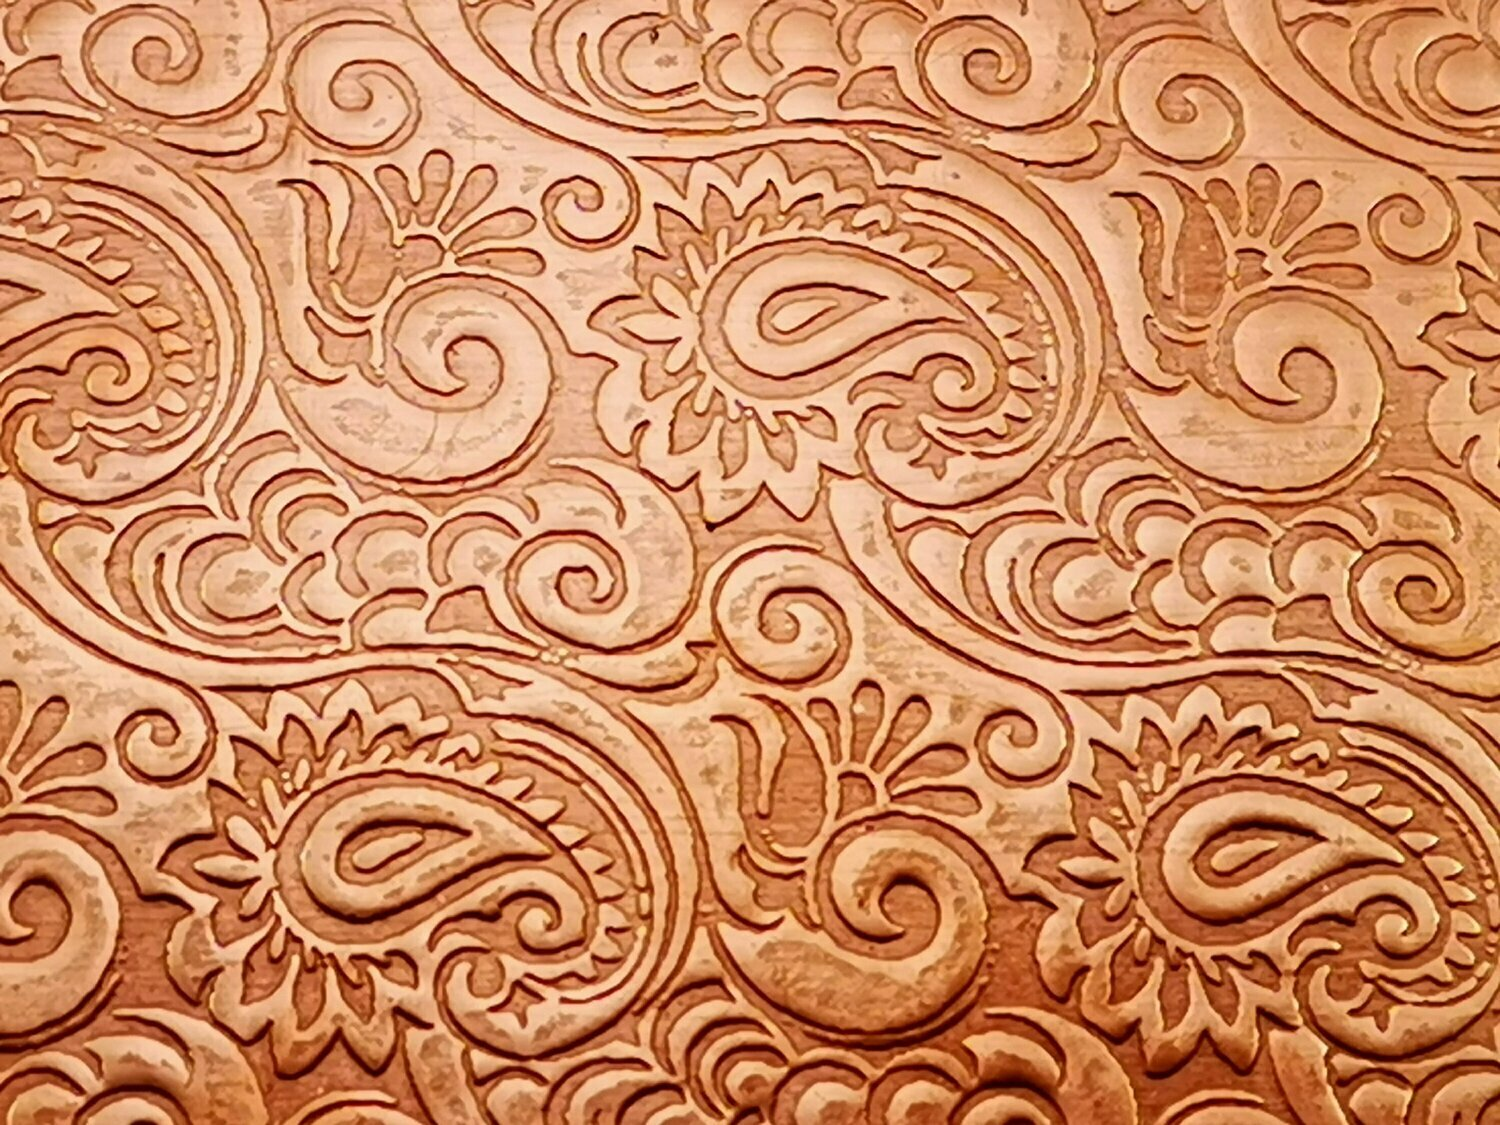 Tooled Paisley Patterned Copper Sheet Metal 6